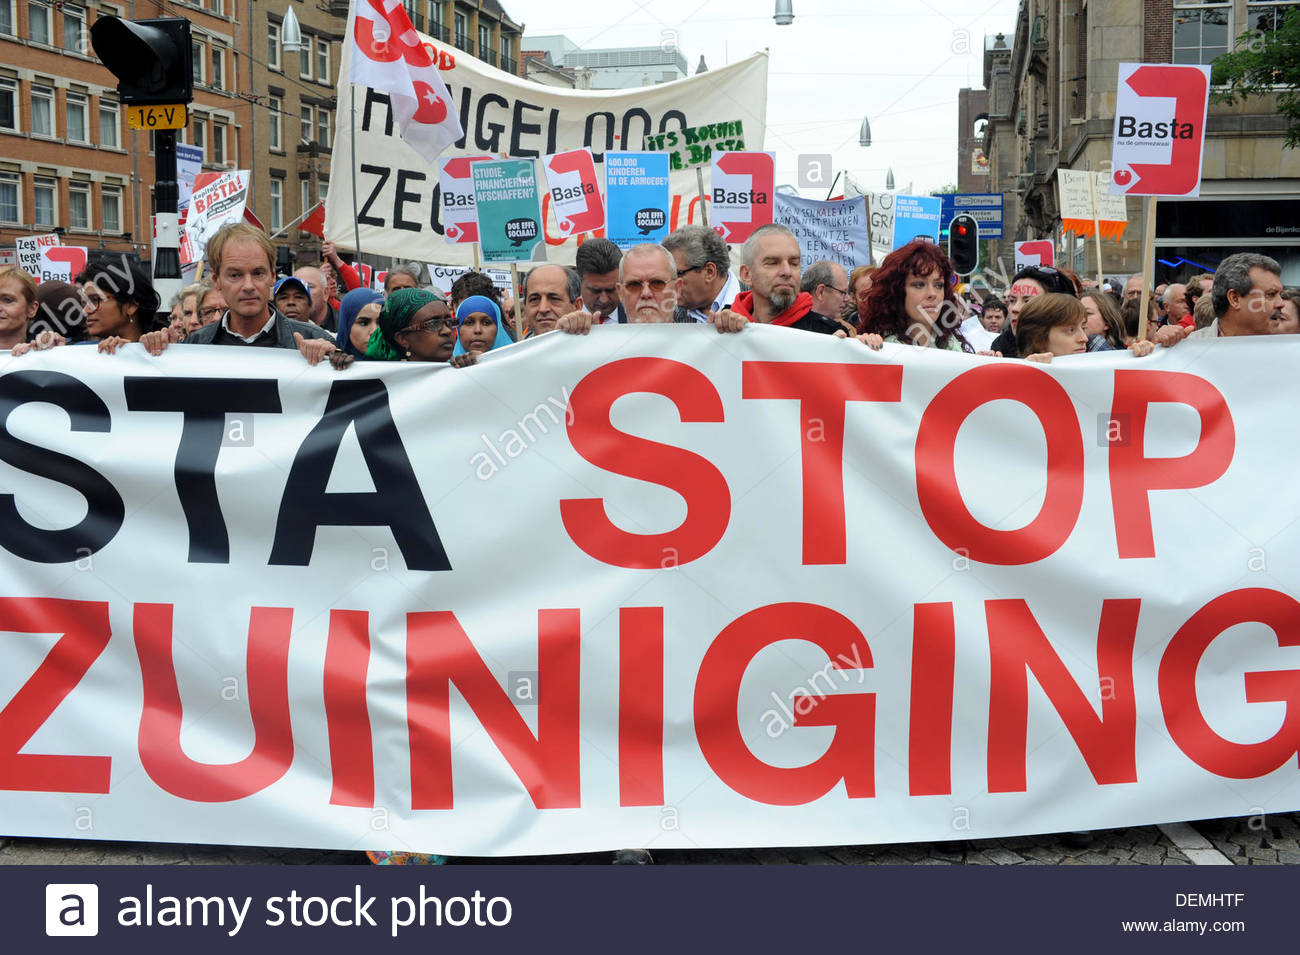 Amsterdam, Netherlands. 21st Sep, 2013. Demonstration against government cuts. Amsterdam NL  In Cities throughout The Netherlands demonstrators take to the streets to protest against proposed governemnt cuts. The march makes its way through Dam Square. - Stock Image